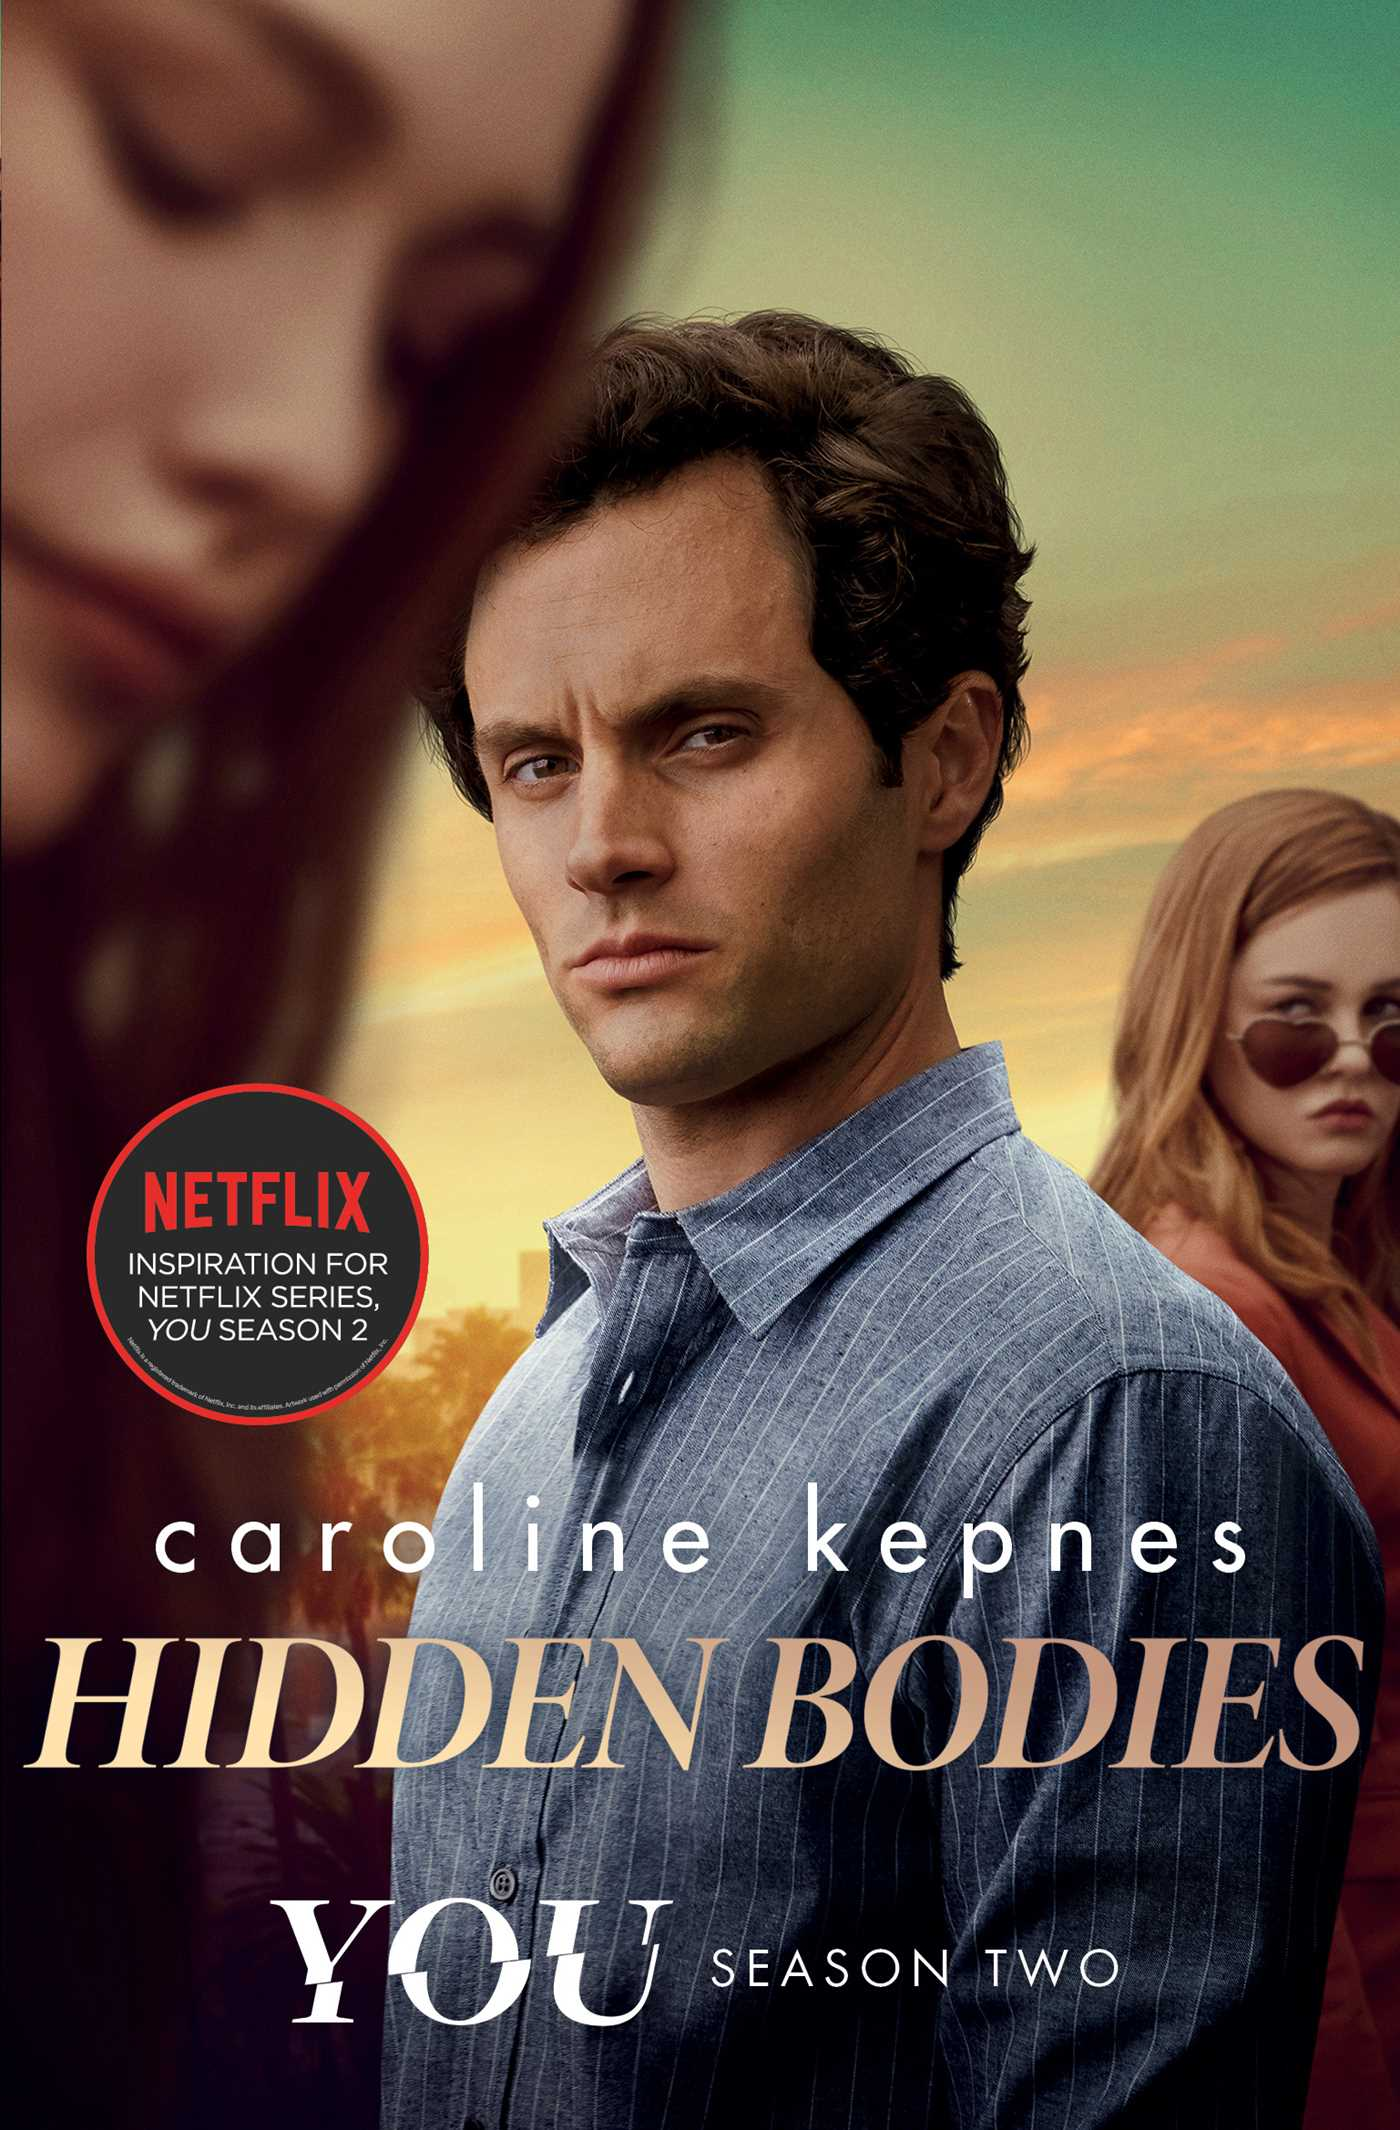 Image result for hidden bodies caroline kepnes book cover